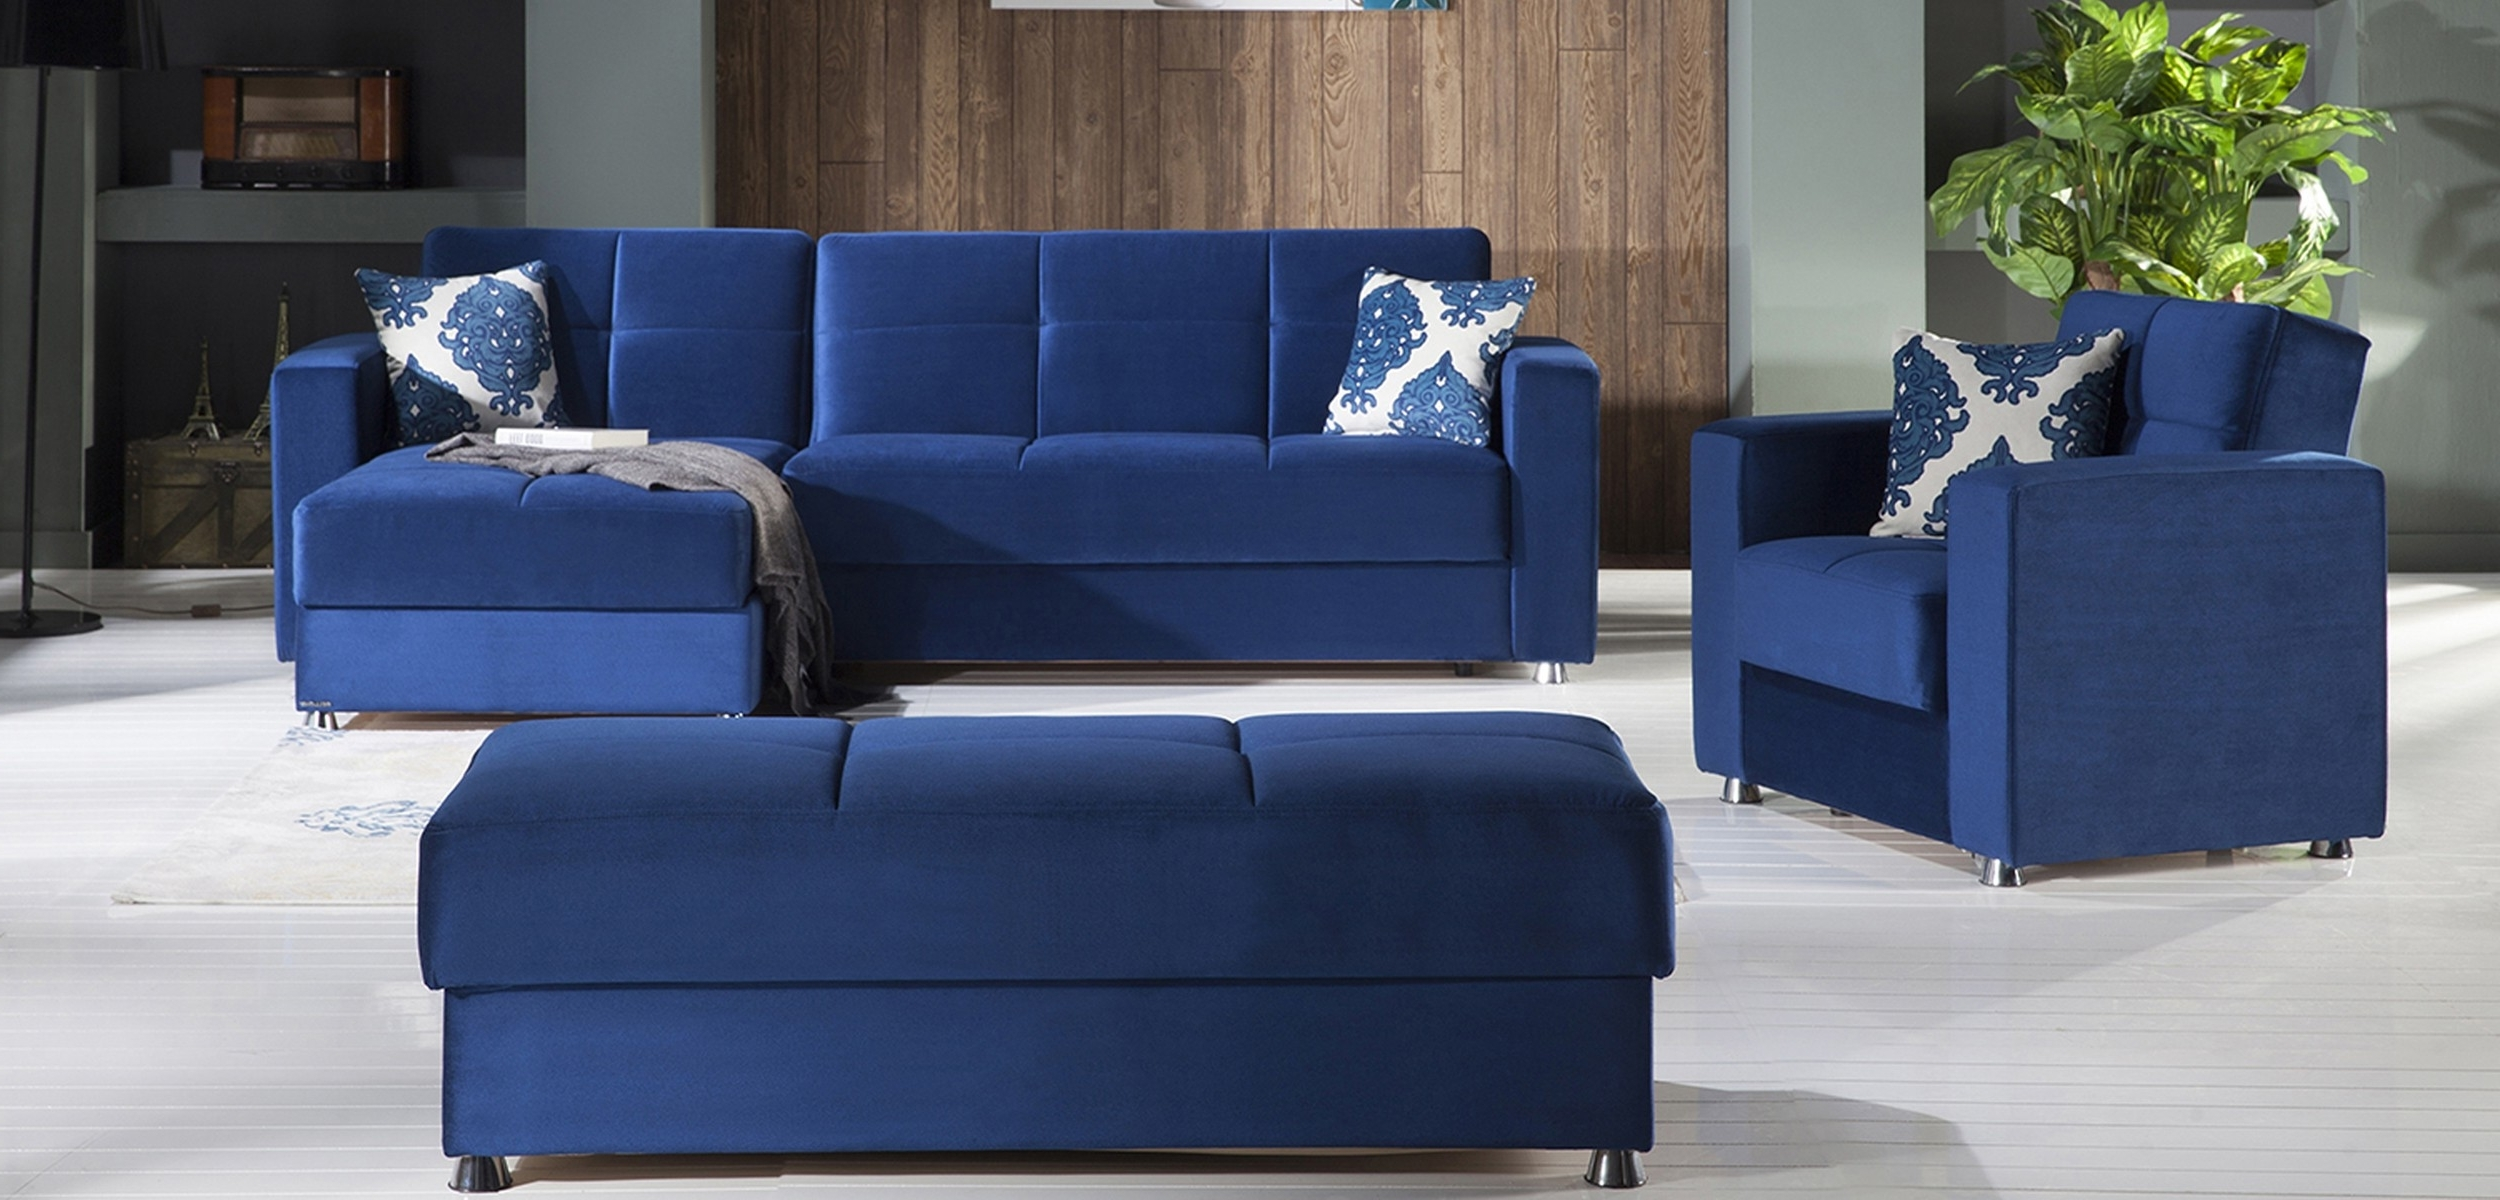 Best And Newest Elegant Convertible Sectional Sofa In Roma Navy Plainistikbal Regarding Convertible Sectional Sofas (View 8 of 20)